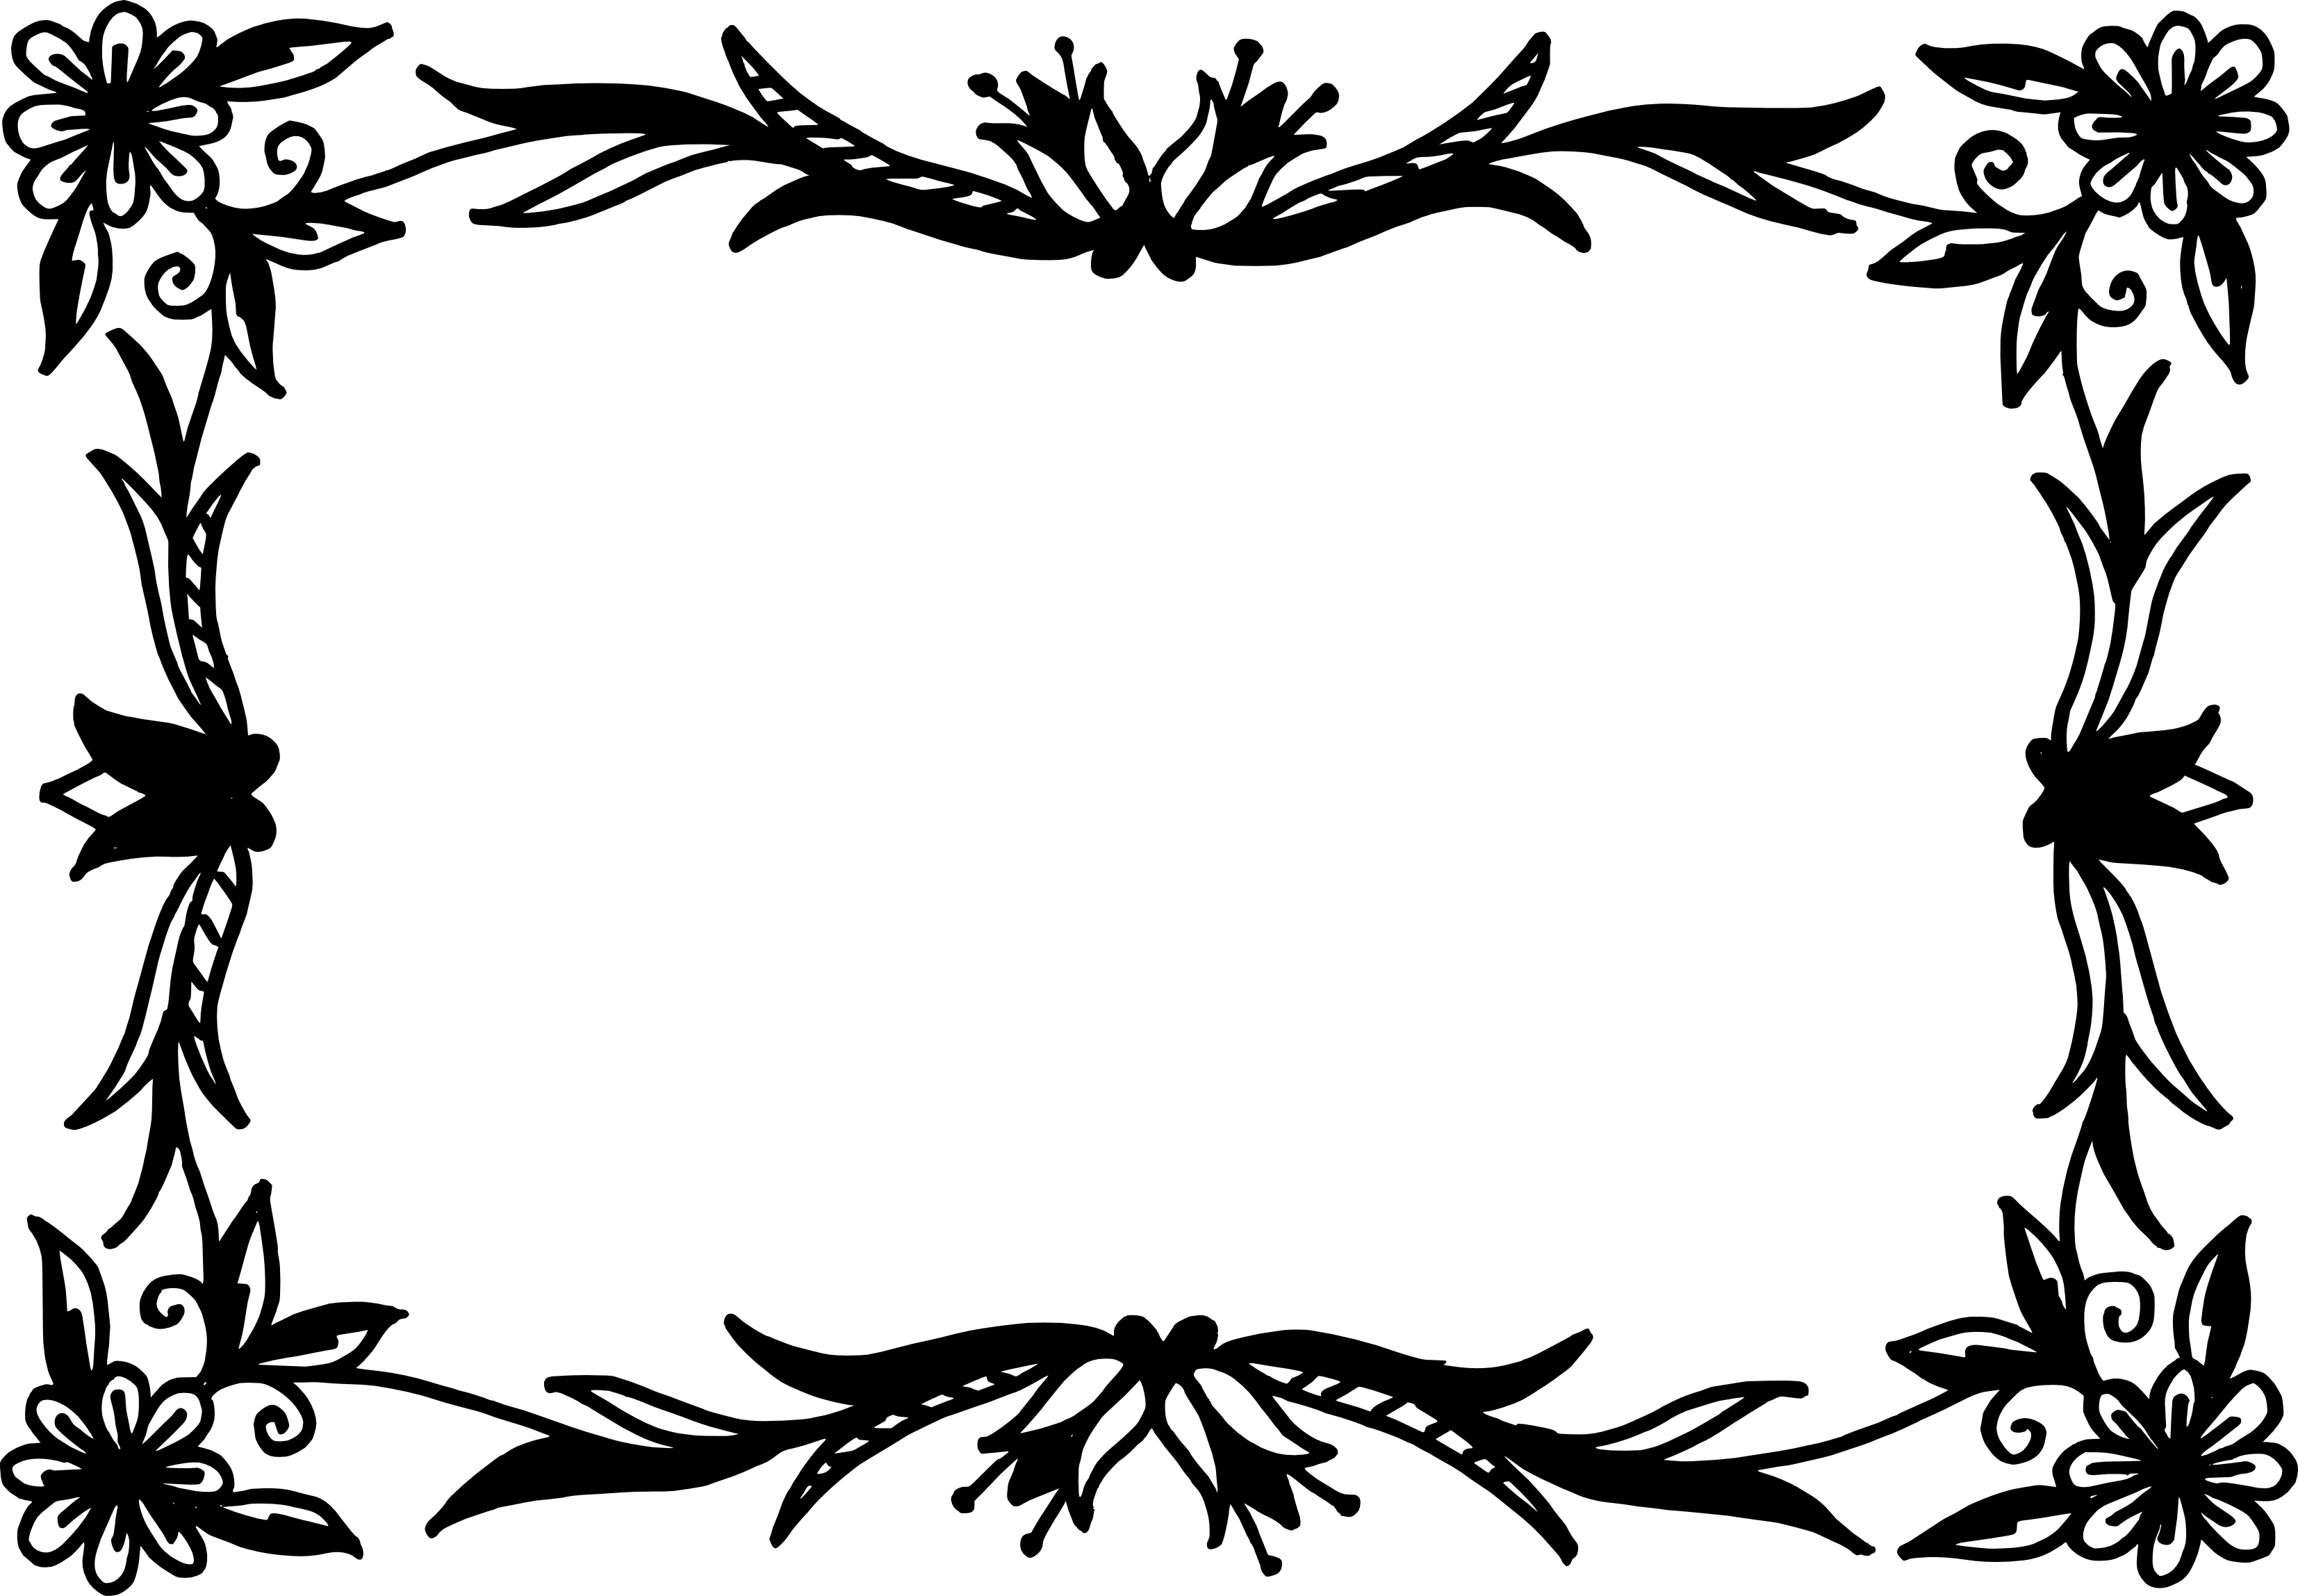 Free Download Png And Vector: 10 Rectangle Flower Frame Vector (PNG Transparent, SVG